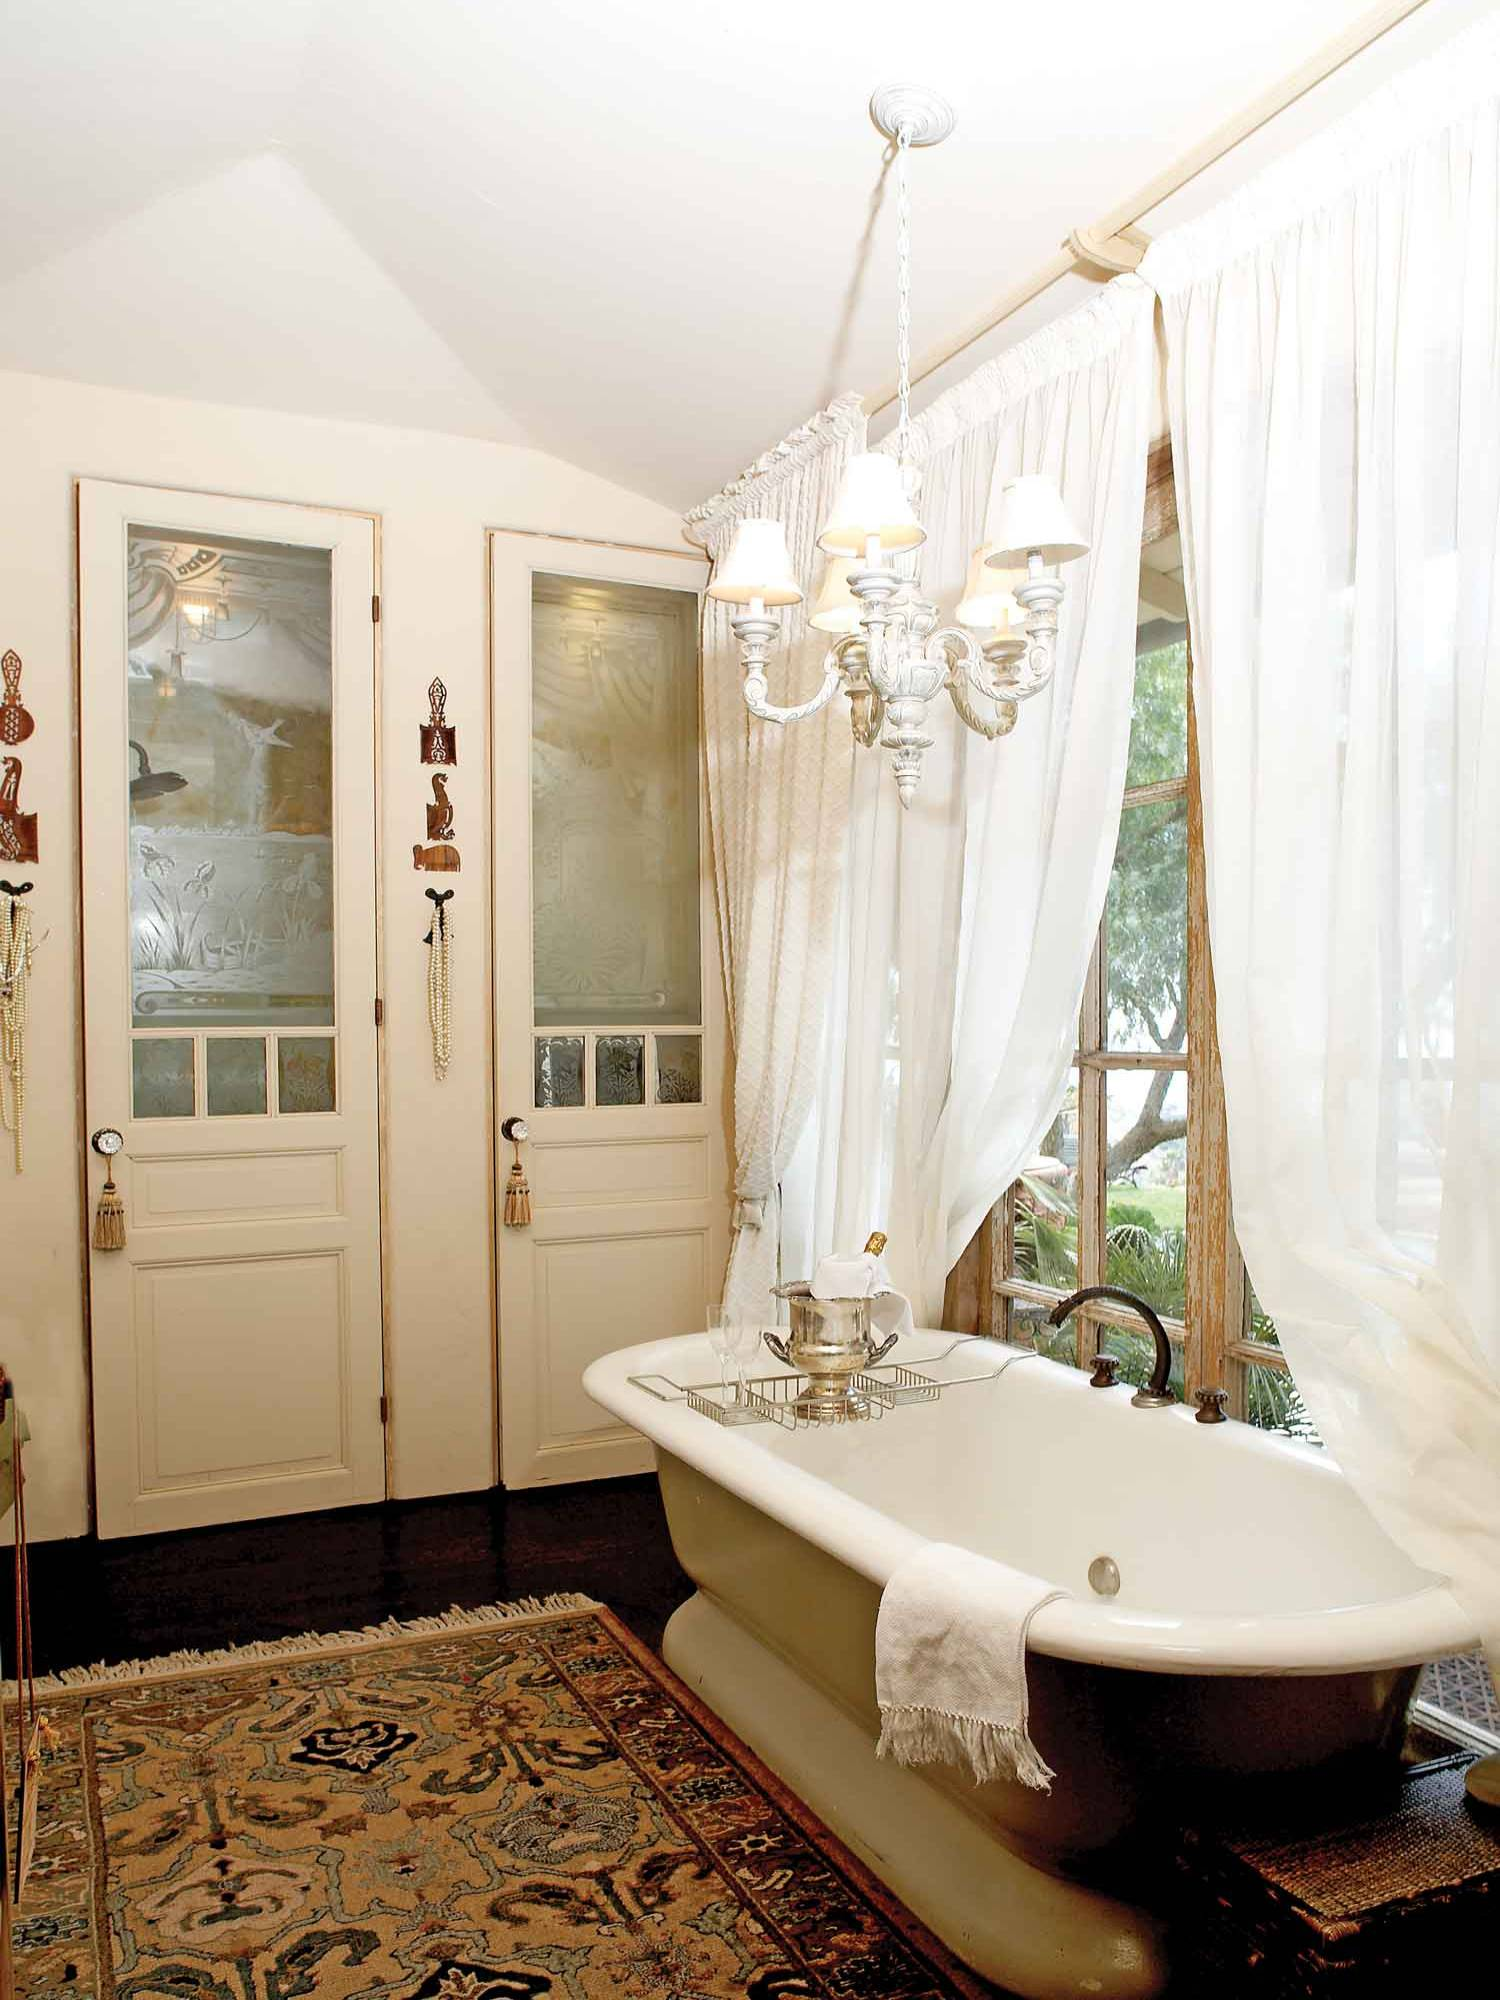 16 Great Vintage Style Bathroom Renovation Examples  Interior Design Inspirations